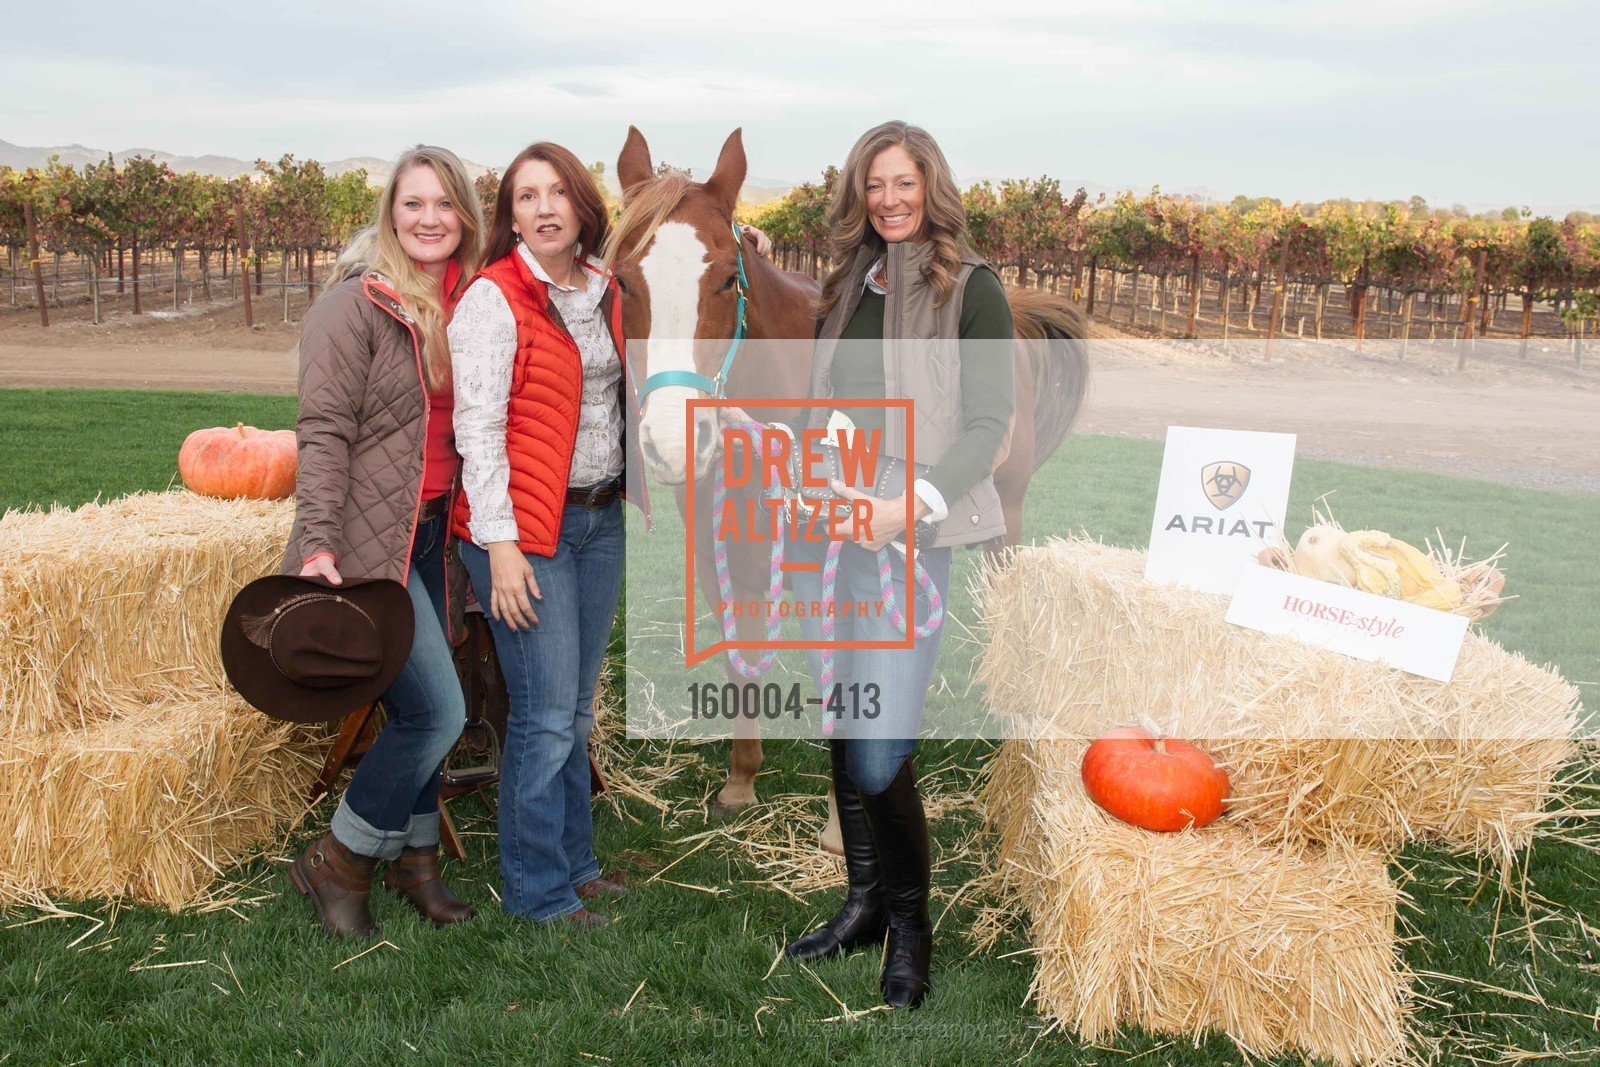 Jessica Golnick, Ashley Matchett Woods, Giana Roberge, A Harvest Barn Dance at Cornerstone Presented By Giant Steps Therapeutic Equestrian Center, Cornerstone Sonoma. 23570 Arnold Dr, October 24th, 2015,Drew Altizer, Drew Altizer Photography, full-service agency, private events, San Francisco photographer, photographer california